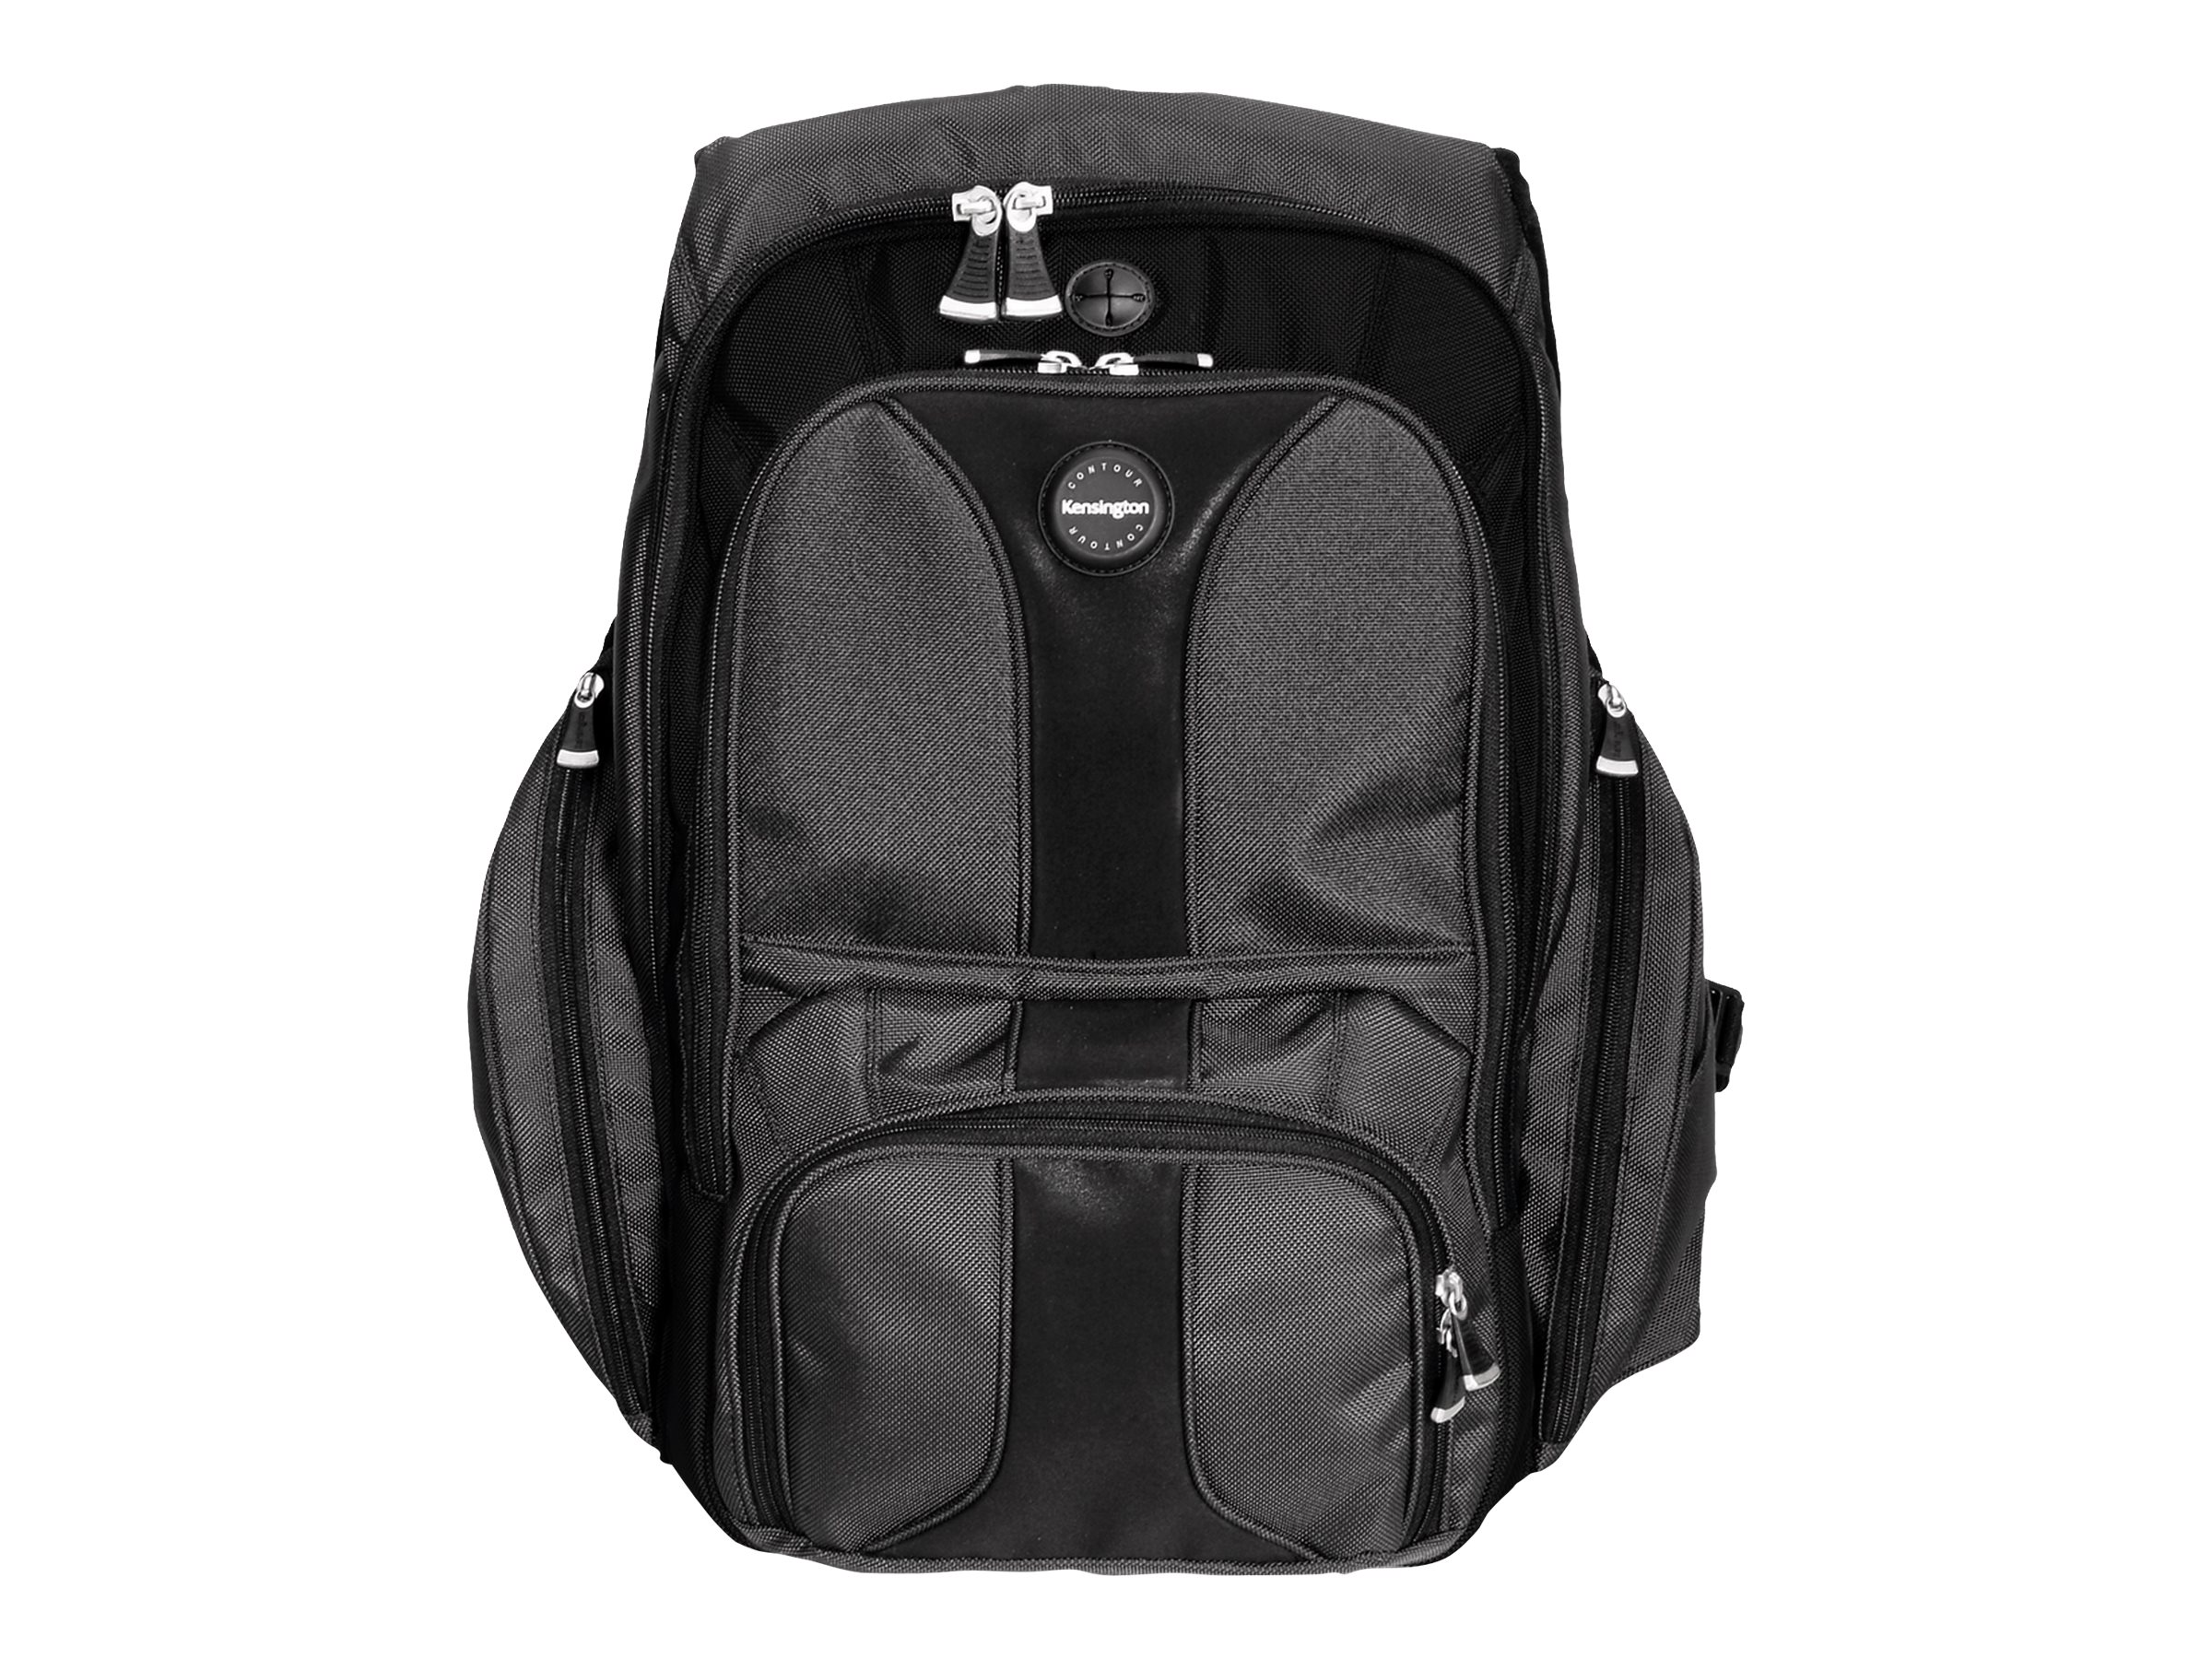 Kensington Contour Backpack, K62238A